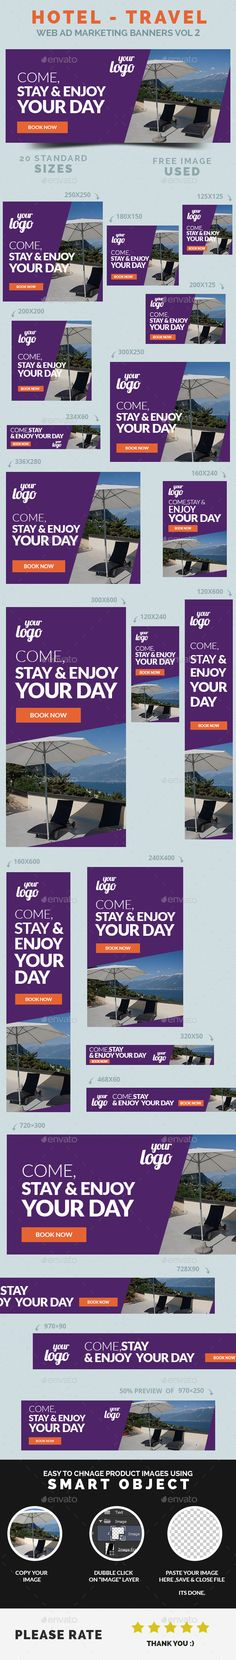 Hotel / Travel Web Ad Marketing Banners Template PSD | Buy and Download: http://graphicriver.net/item/hotel-travel-web-ad-marketing-banners-vol-2/9092555?WT.ac=category_thumb&WT.z_author=webduck&ref=ksioks